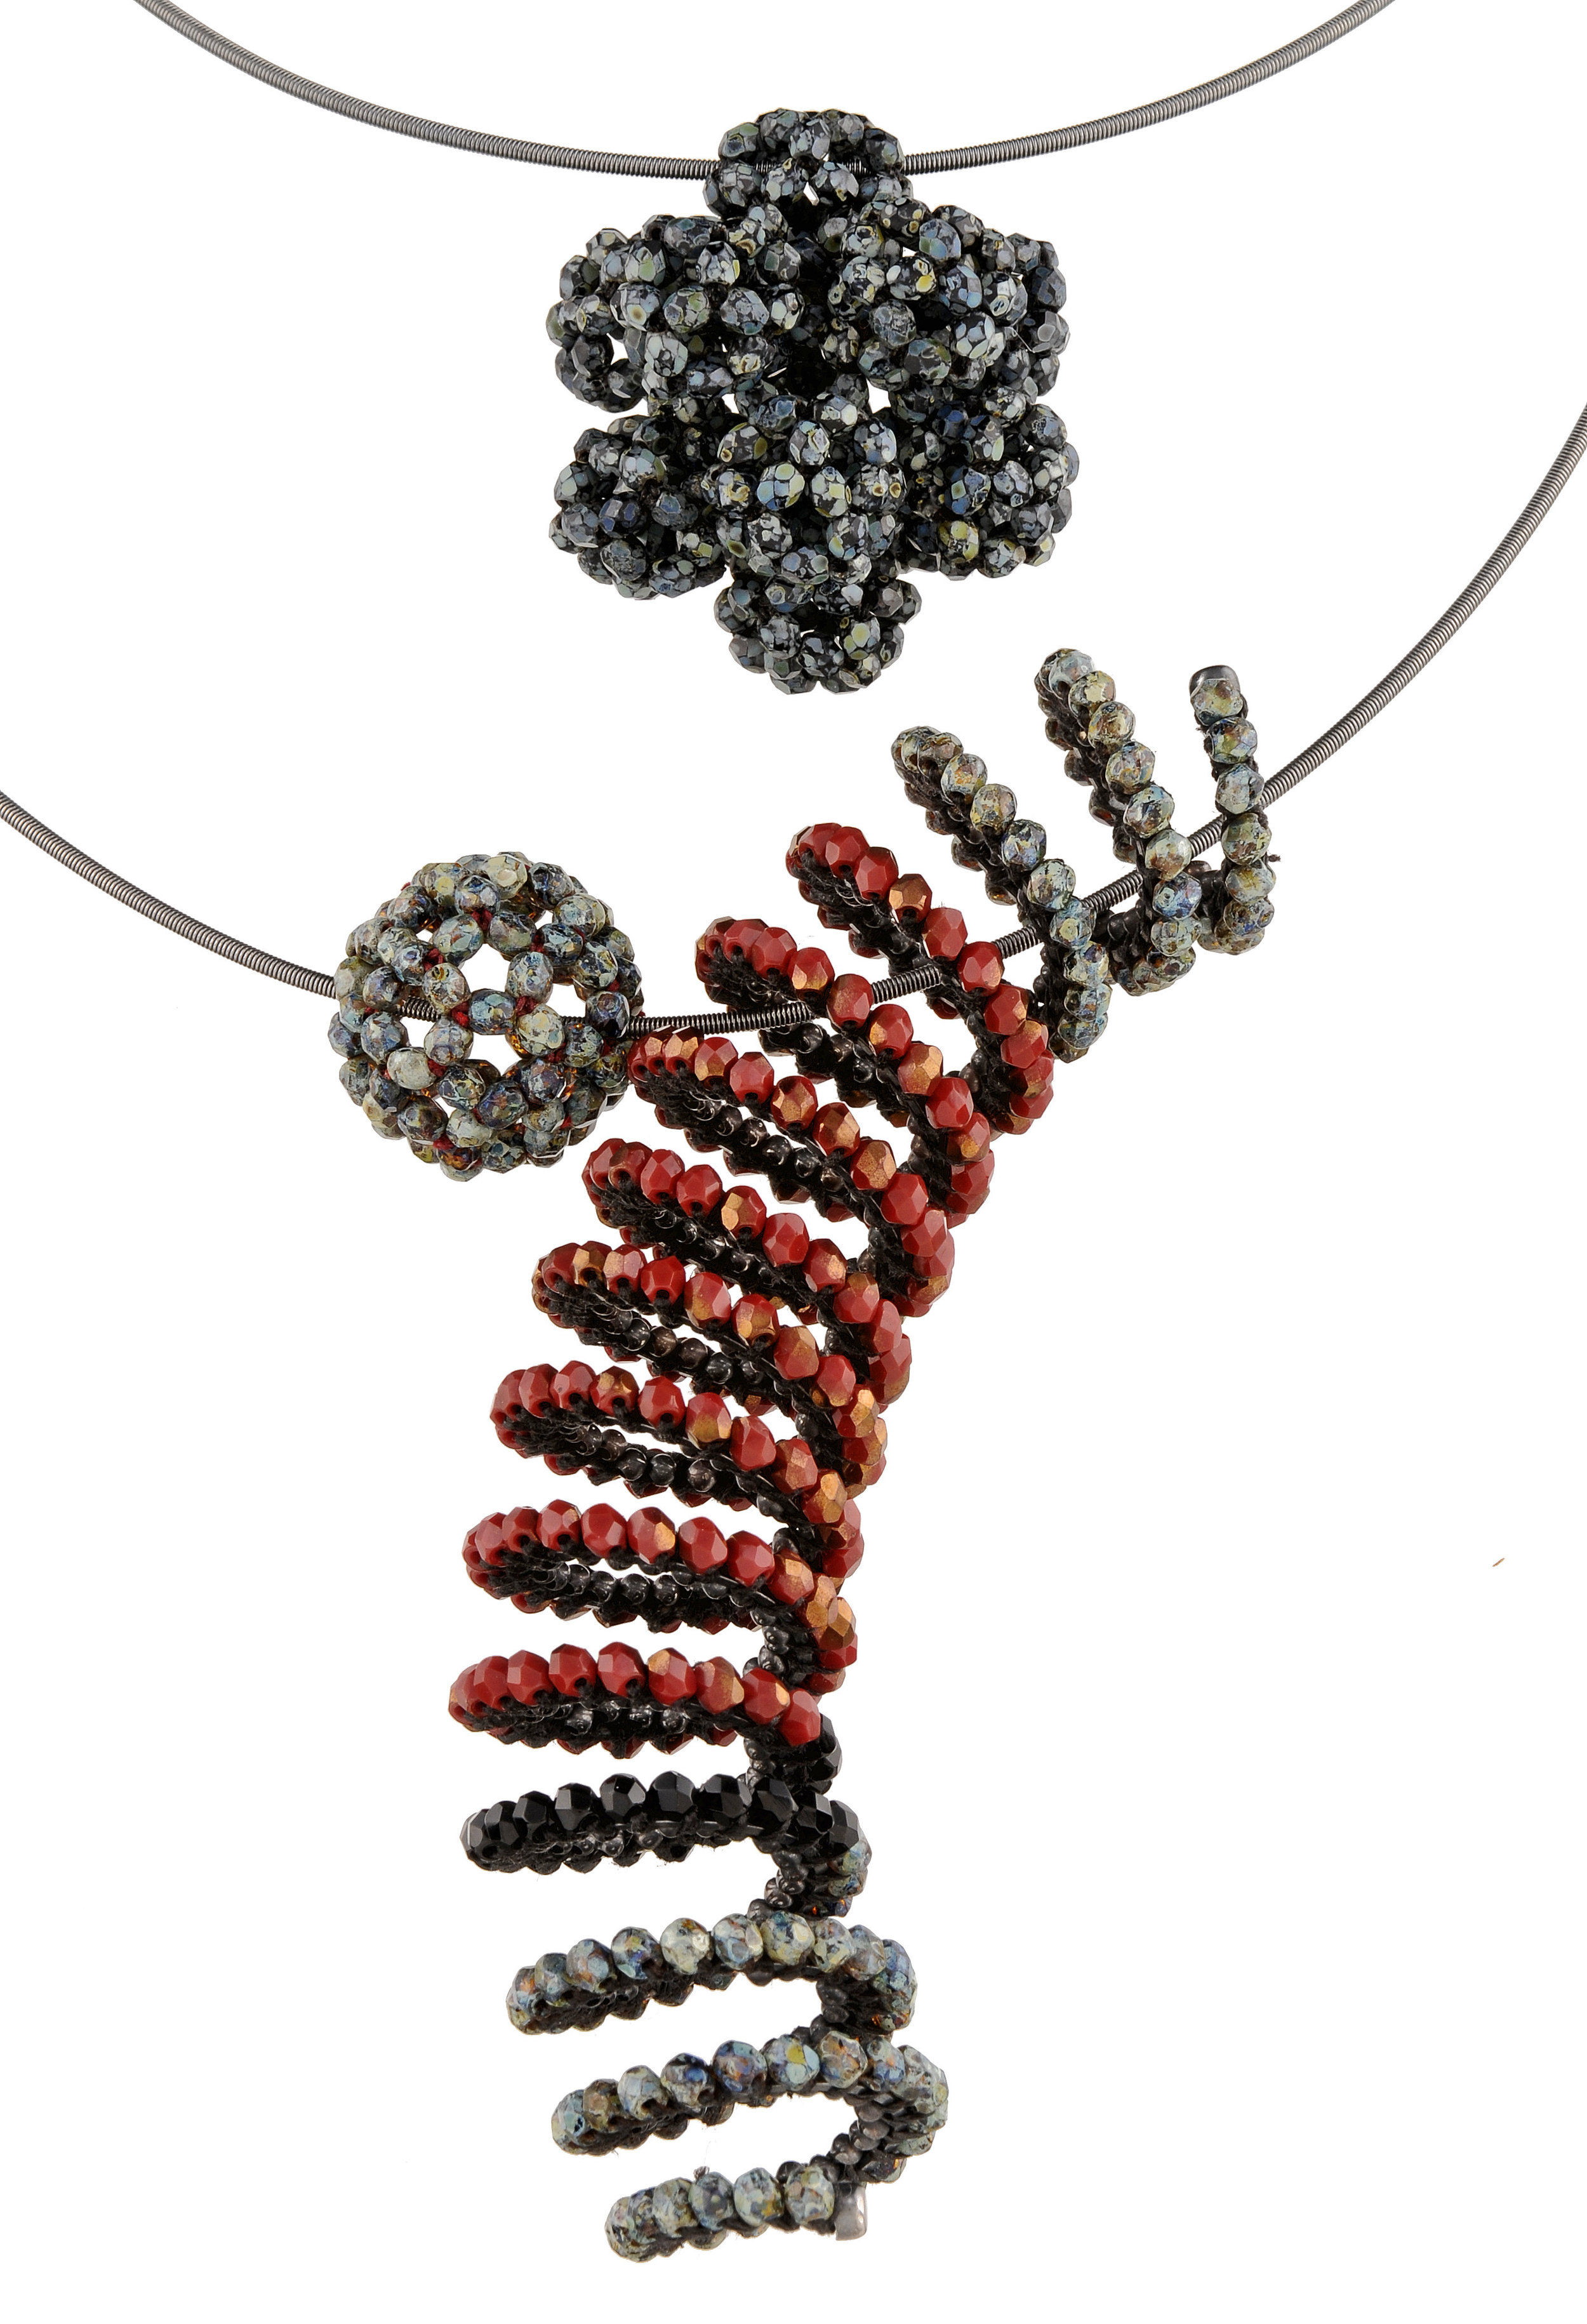 Sphere and Spiral Necklaces.jpg